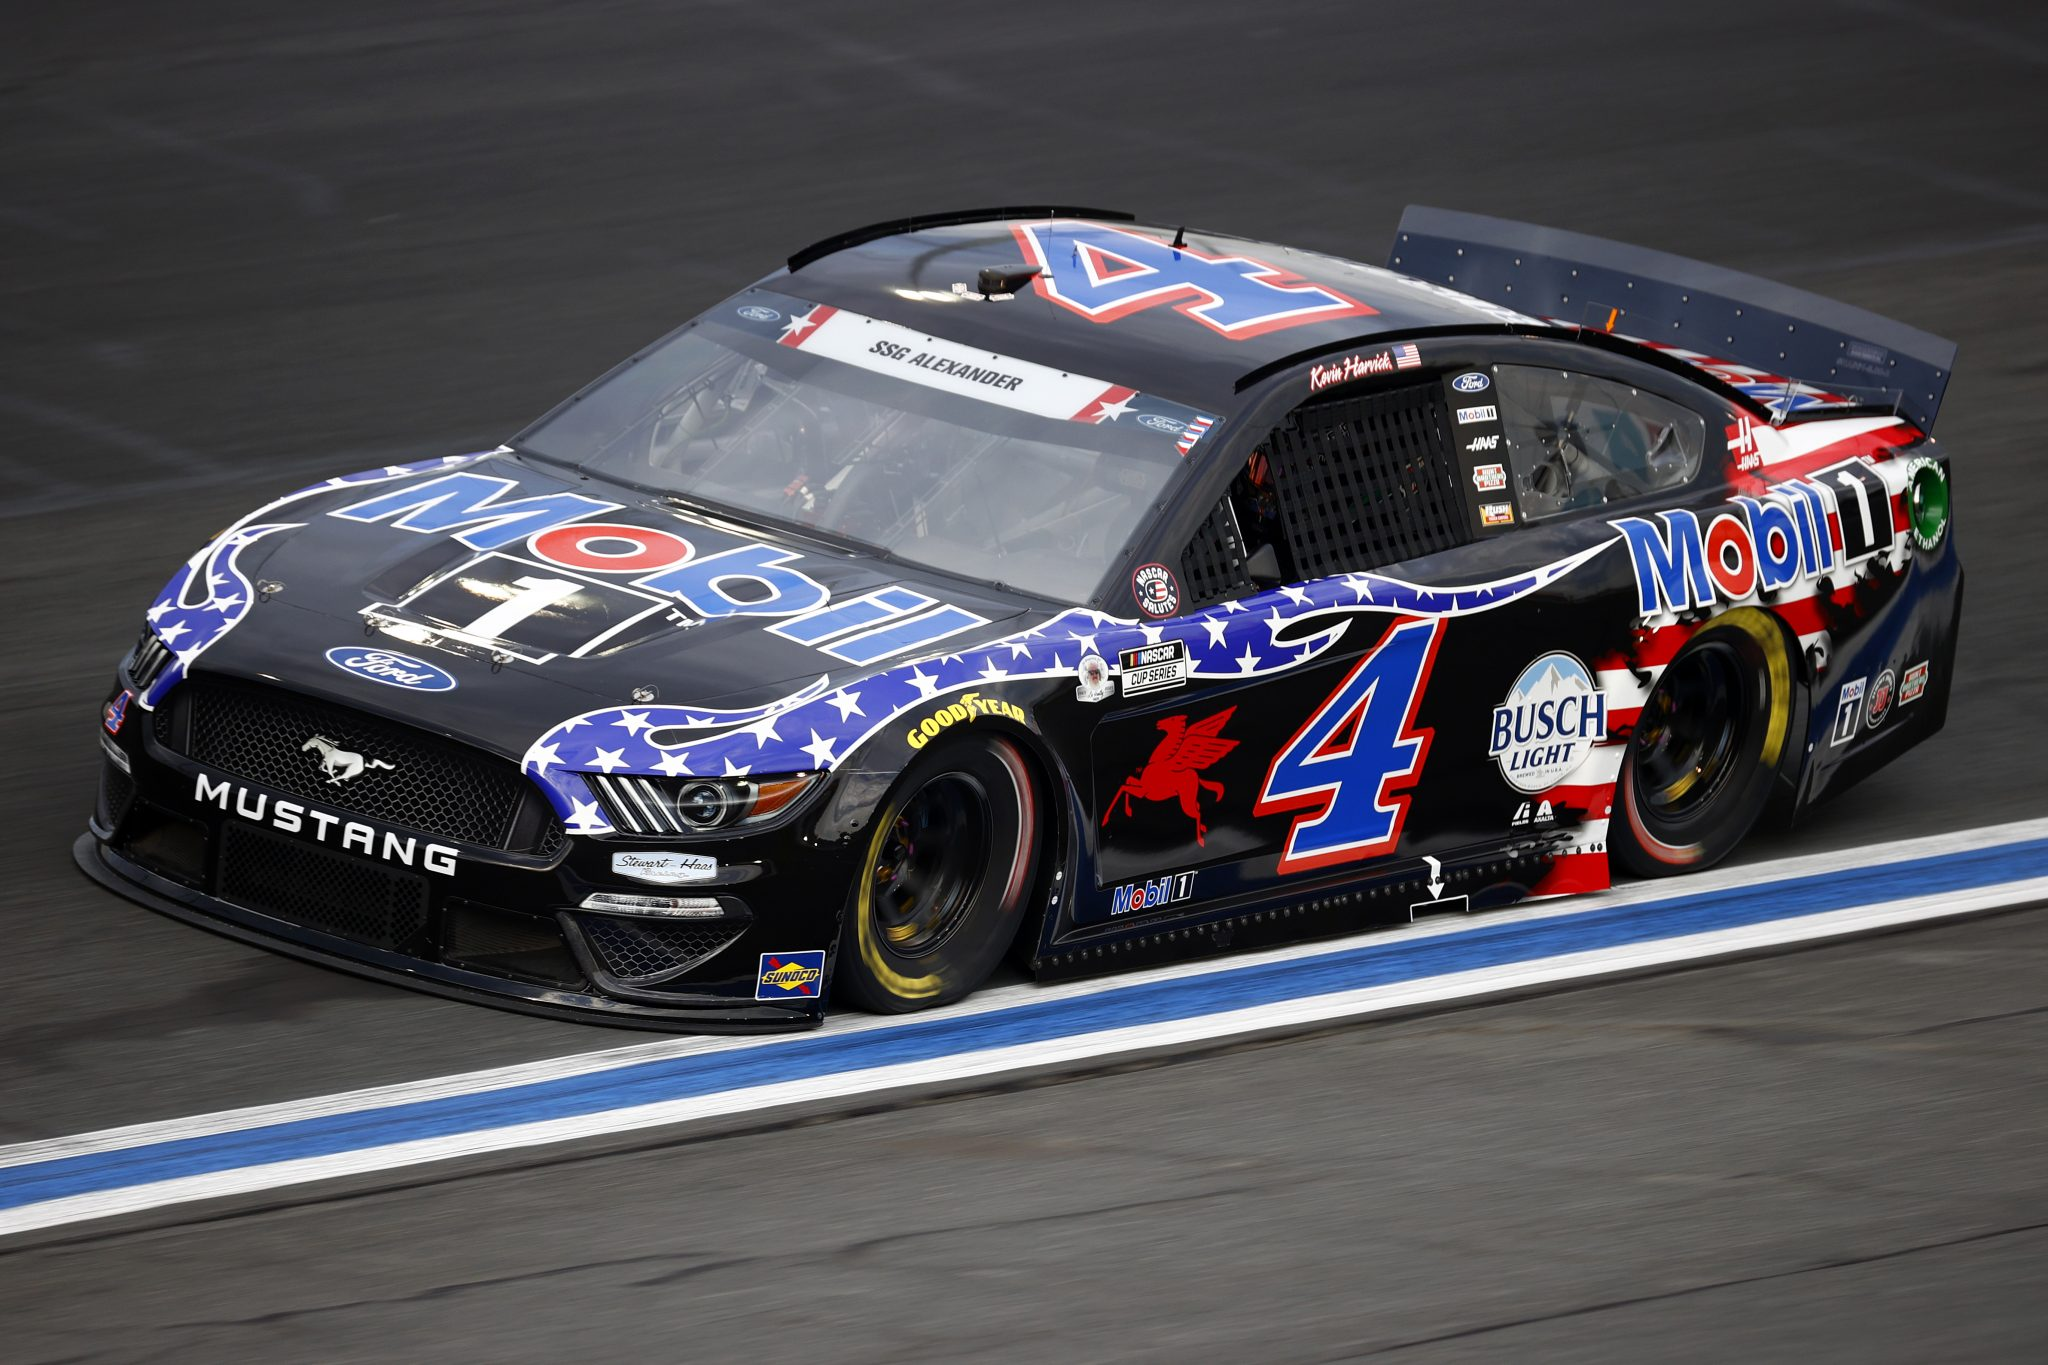 CONCORD, NORTH CAROLINA - MAY 28: Kevin Harvick, driver of the #4 Mobil 1 Ford, drives during practice for the NASCAR Cup Series Coca-Cola 600 at Charlotte Motor Speedway on May 28, 2021 in Concord, North Carolina. (Photo by Jared C. Tilton/Getty Images) | Getty Images